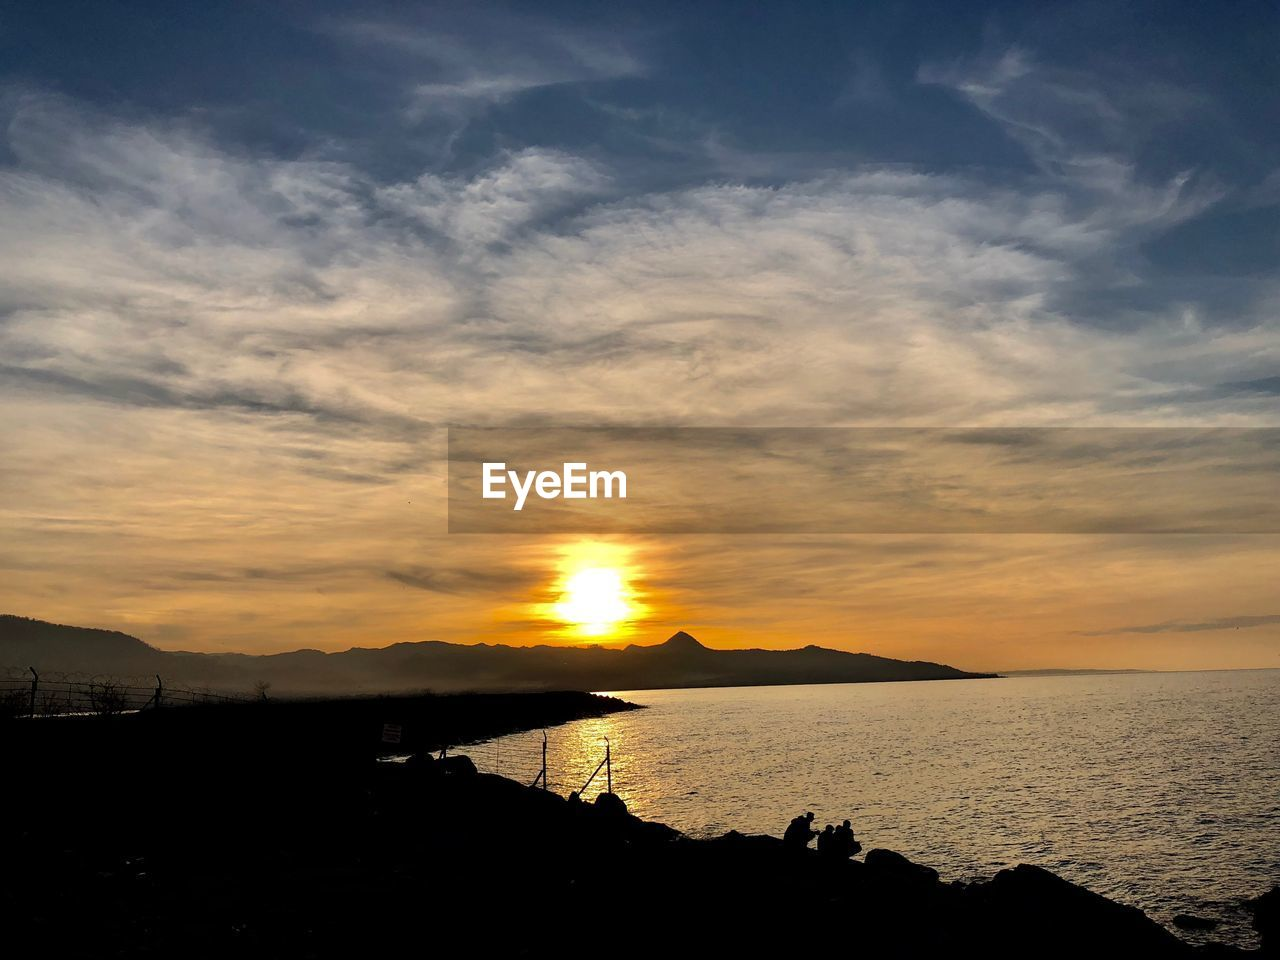 sunset, scenics, sky, sea, silhouette, sun, beauty in nature, tranquility, nature, tranquil scene, water, cloud - sky, outdoors, mountain, no people, sunlight, horizon over water, day